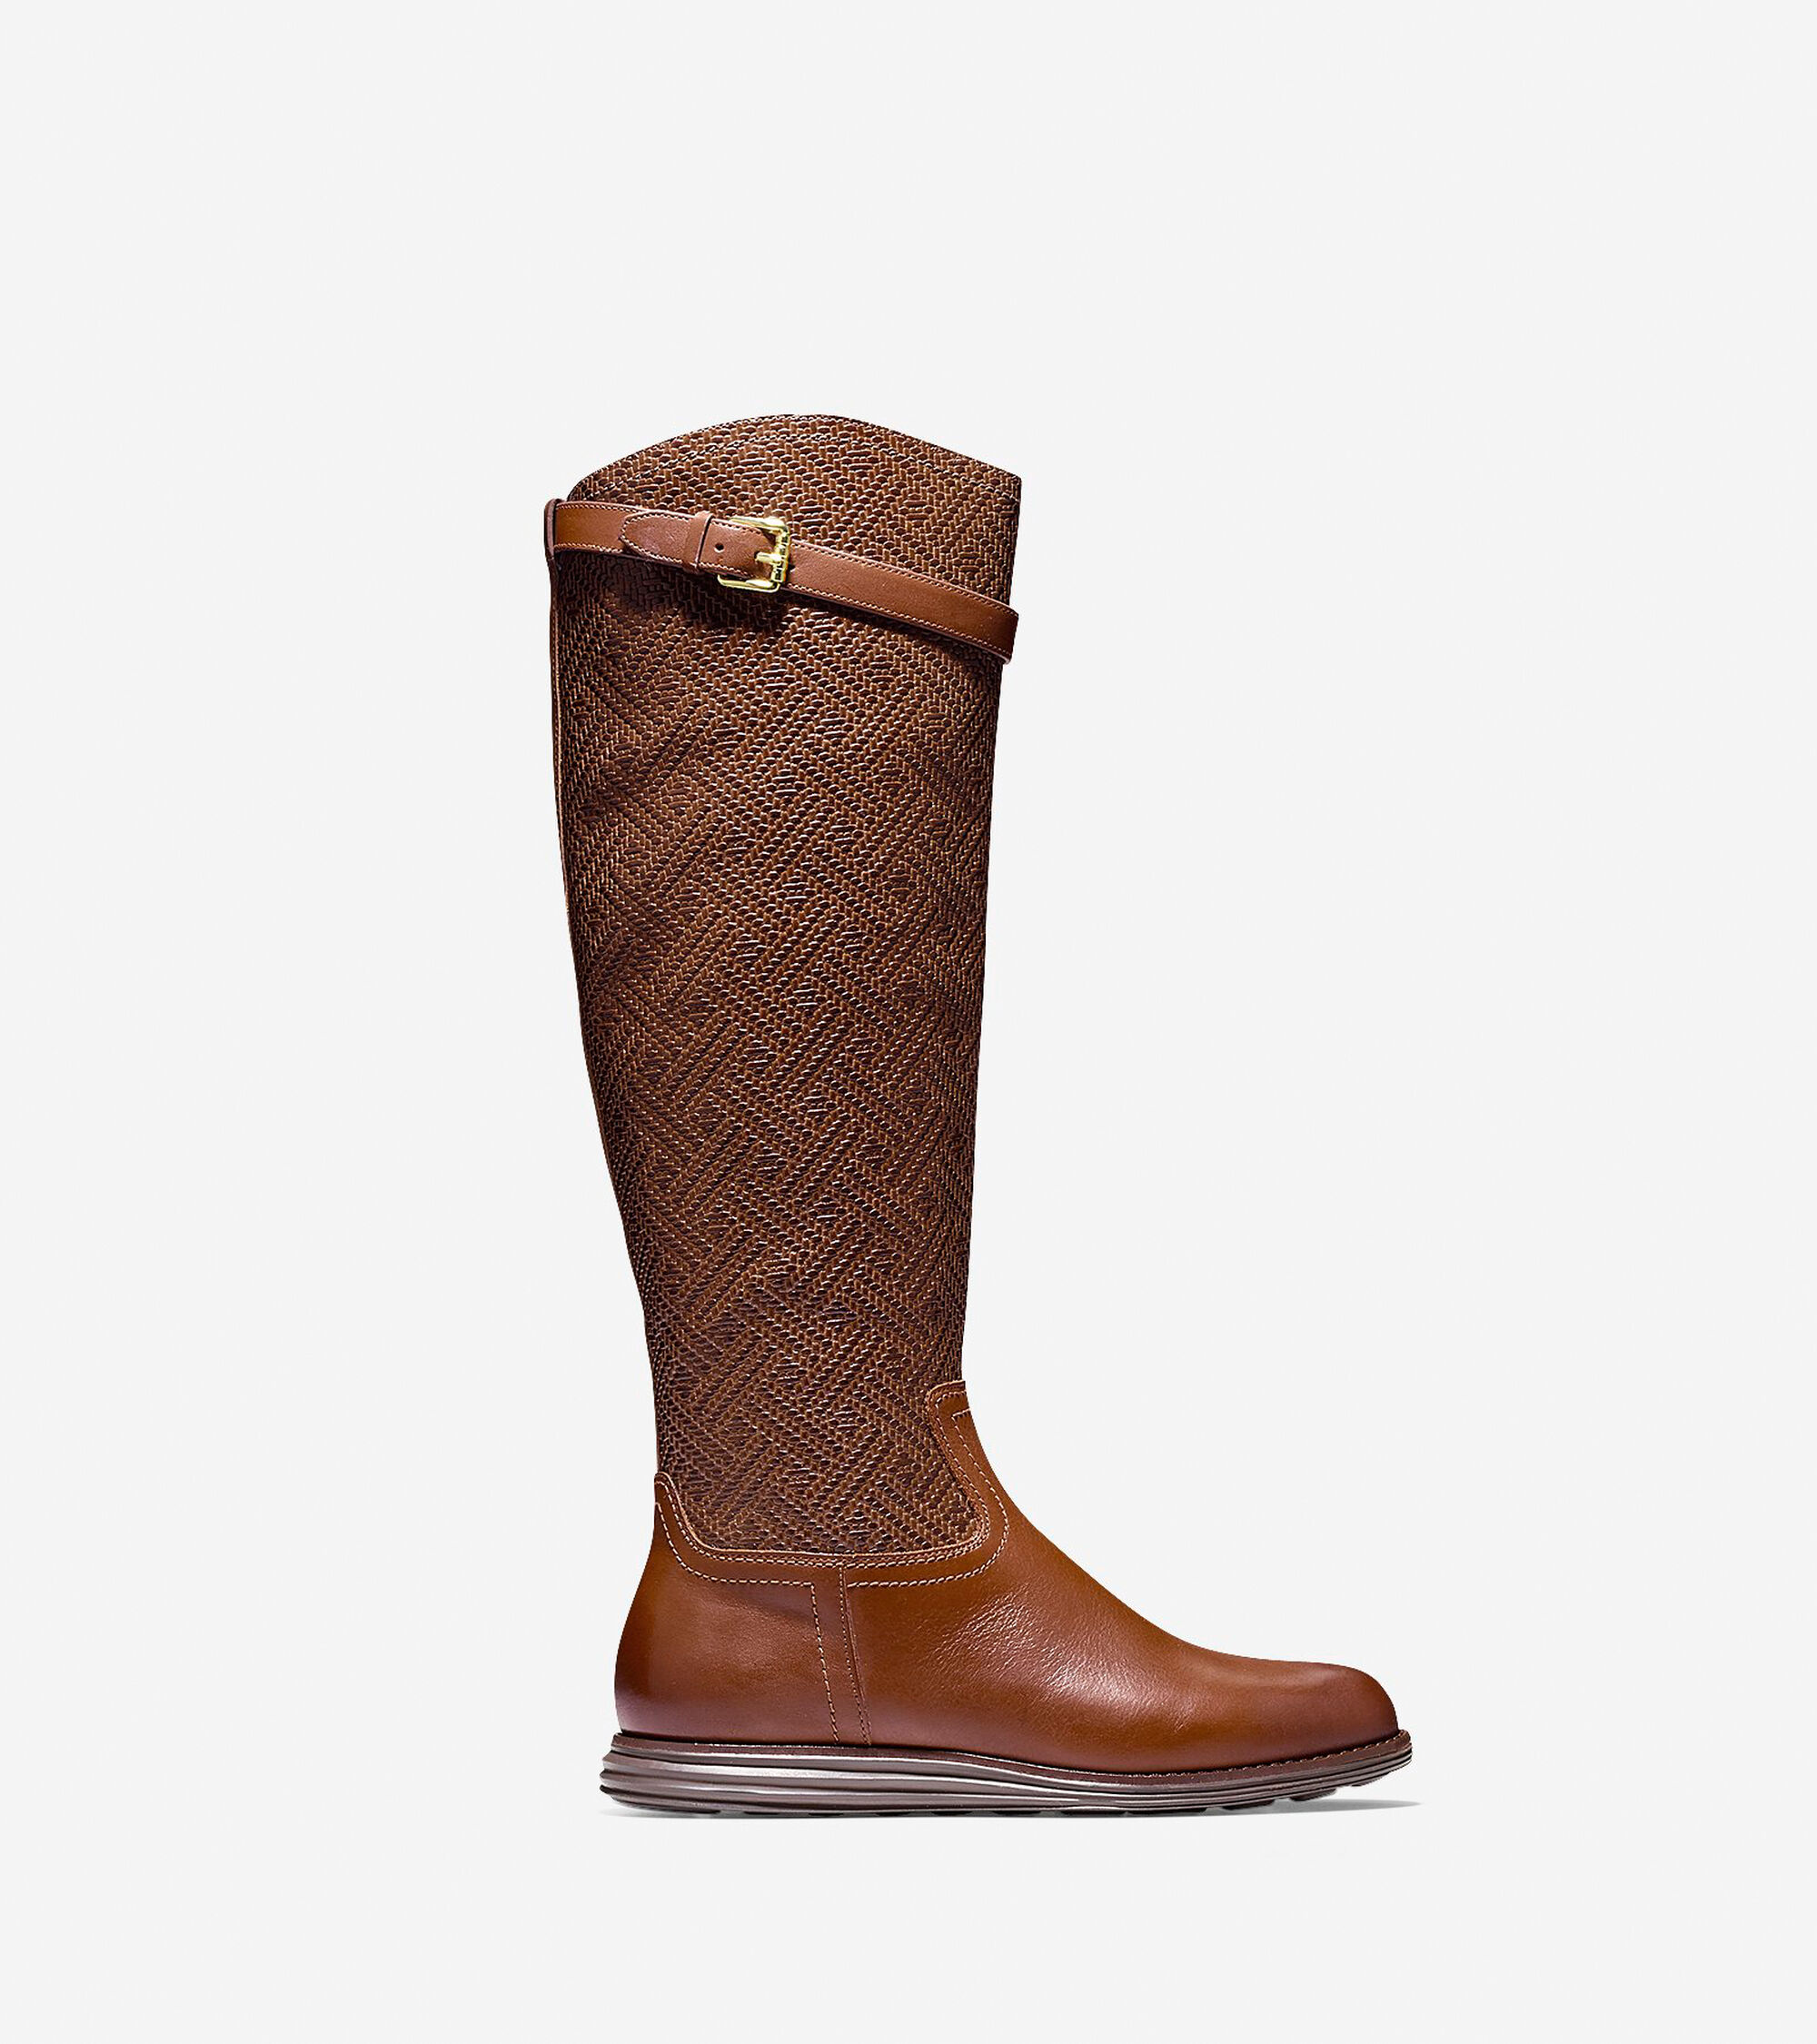 Cole Haan Womens OriginalGrand Tall Boots